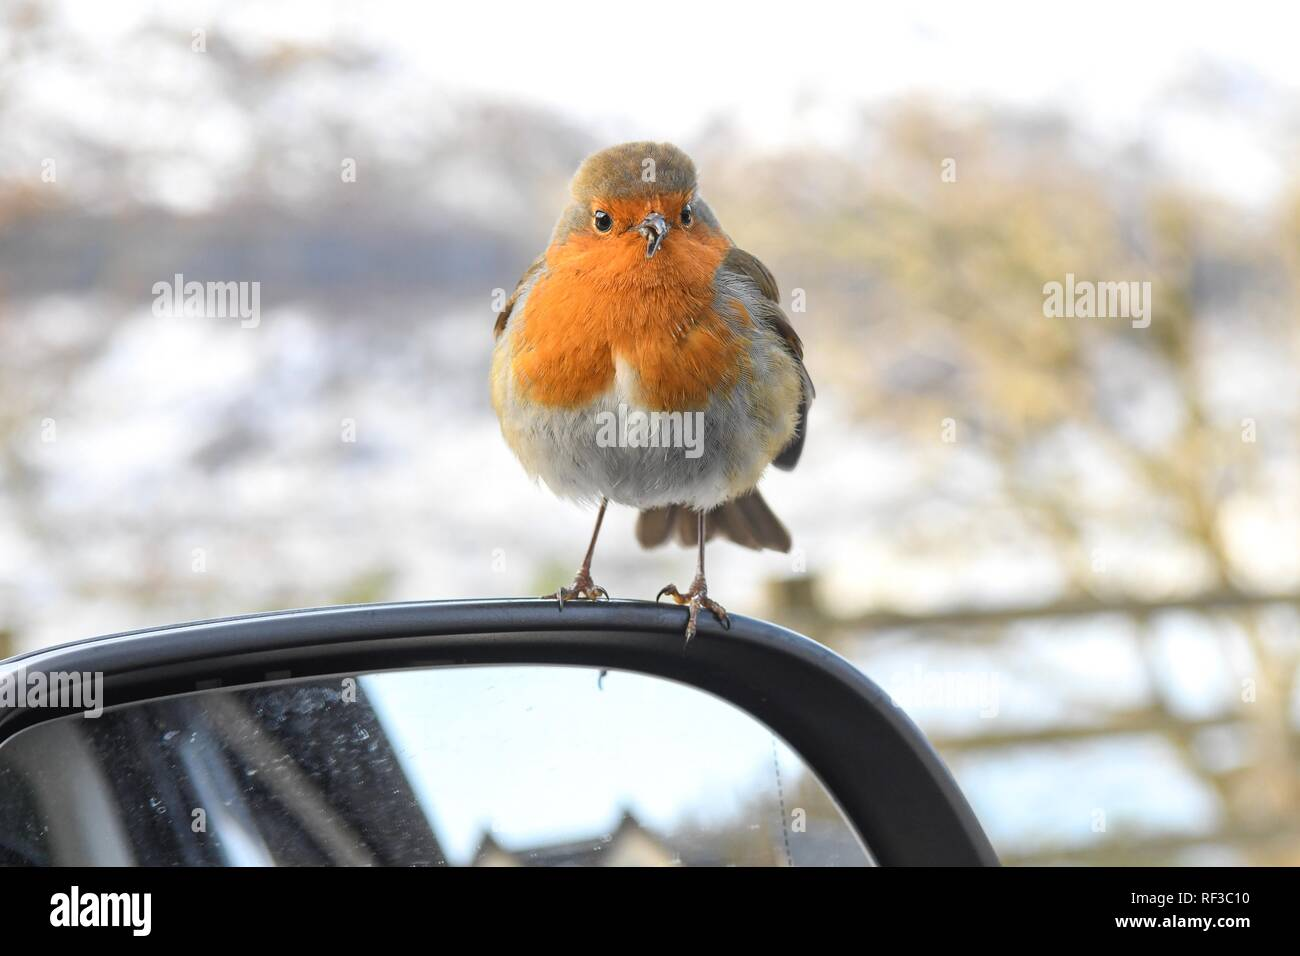 Loch Lomond, Scotland, UK. 24th Jan, 2019. uk weather - a cheeky robin hops inside Campervan hoping to be fed on a cold afternoon at Loch Lomond. The unfortunate bird has an overgrown and misshapen beak which may make feeding itself more difficult Credit: Kay Roxby/Alamy Live News Stock Photo